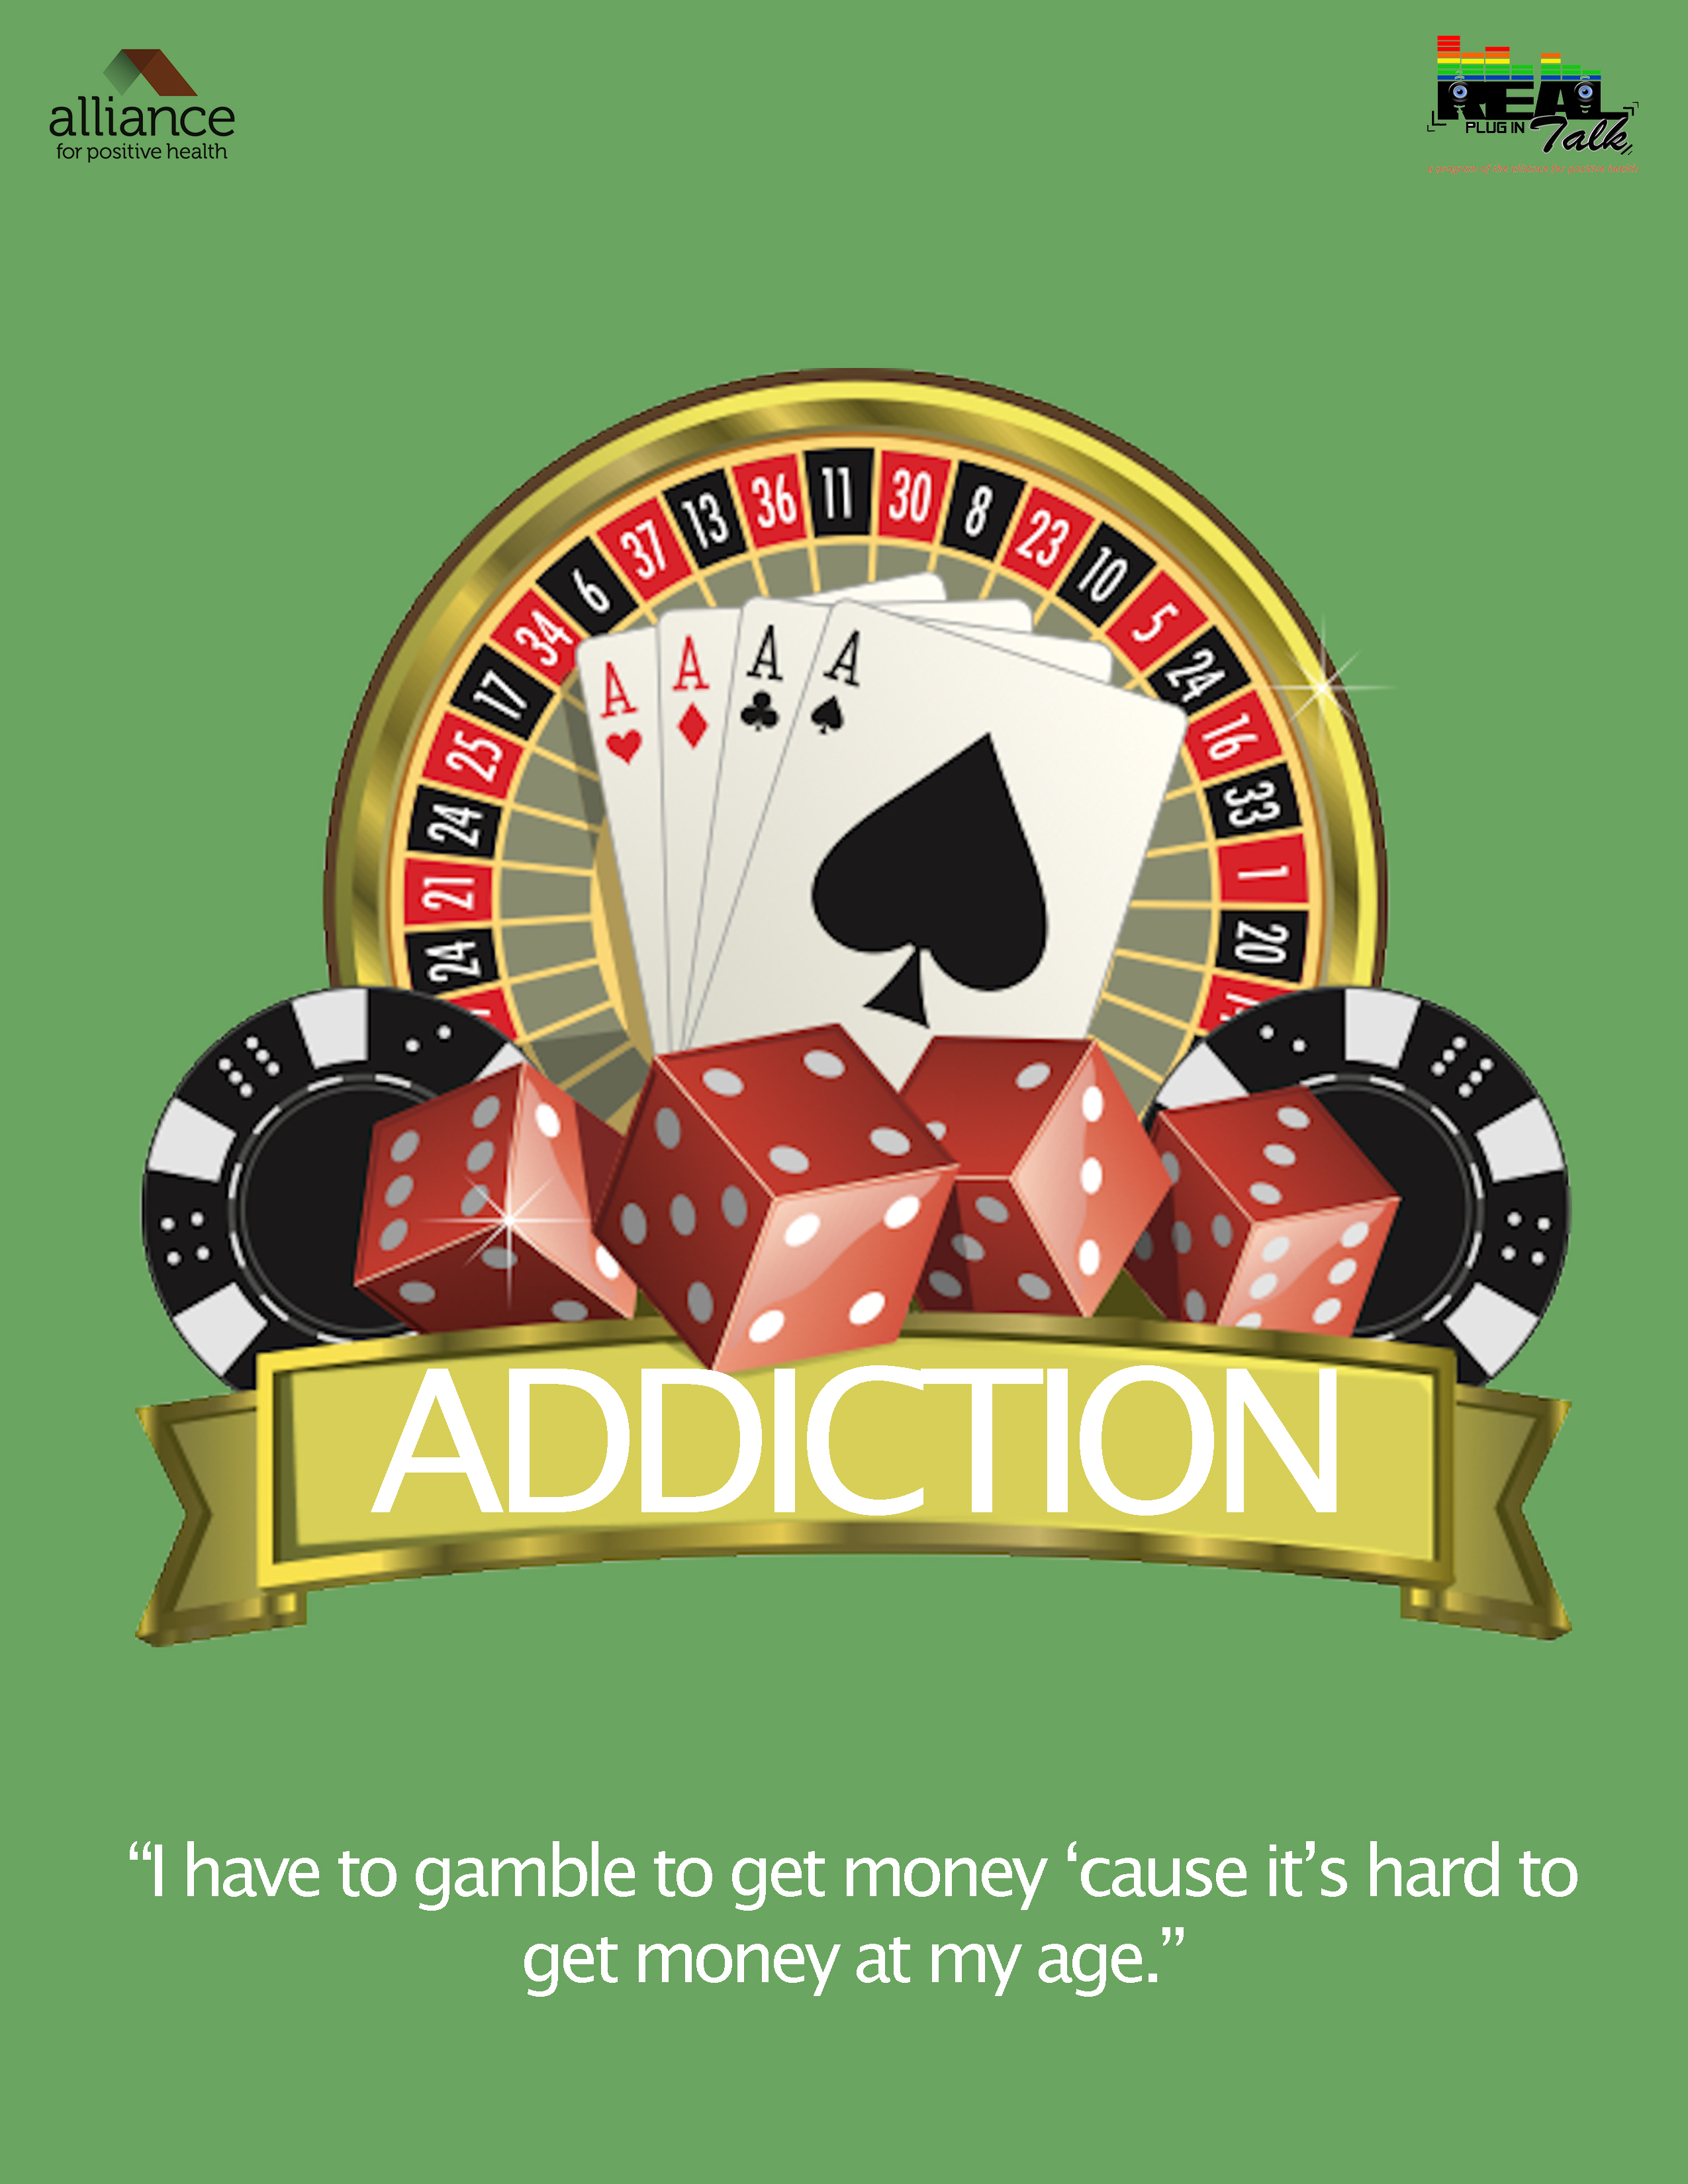 Graphic of roulette wheel, four Ace cards, gambling tokens and dice with the title 'Addiction' and the text